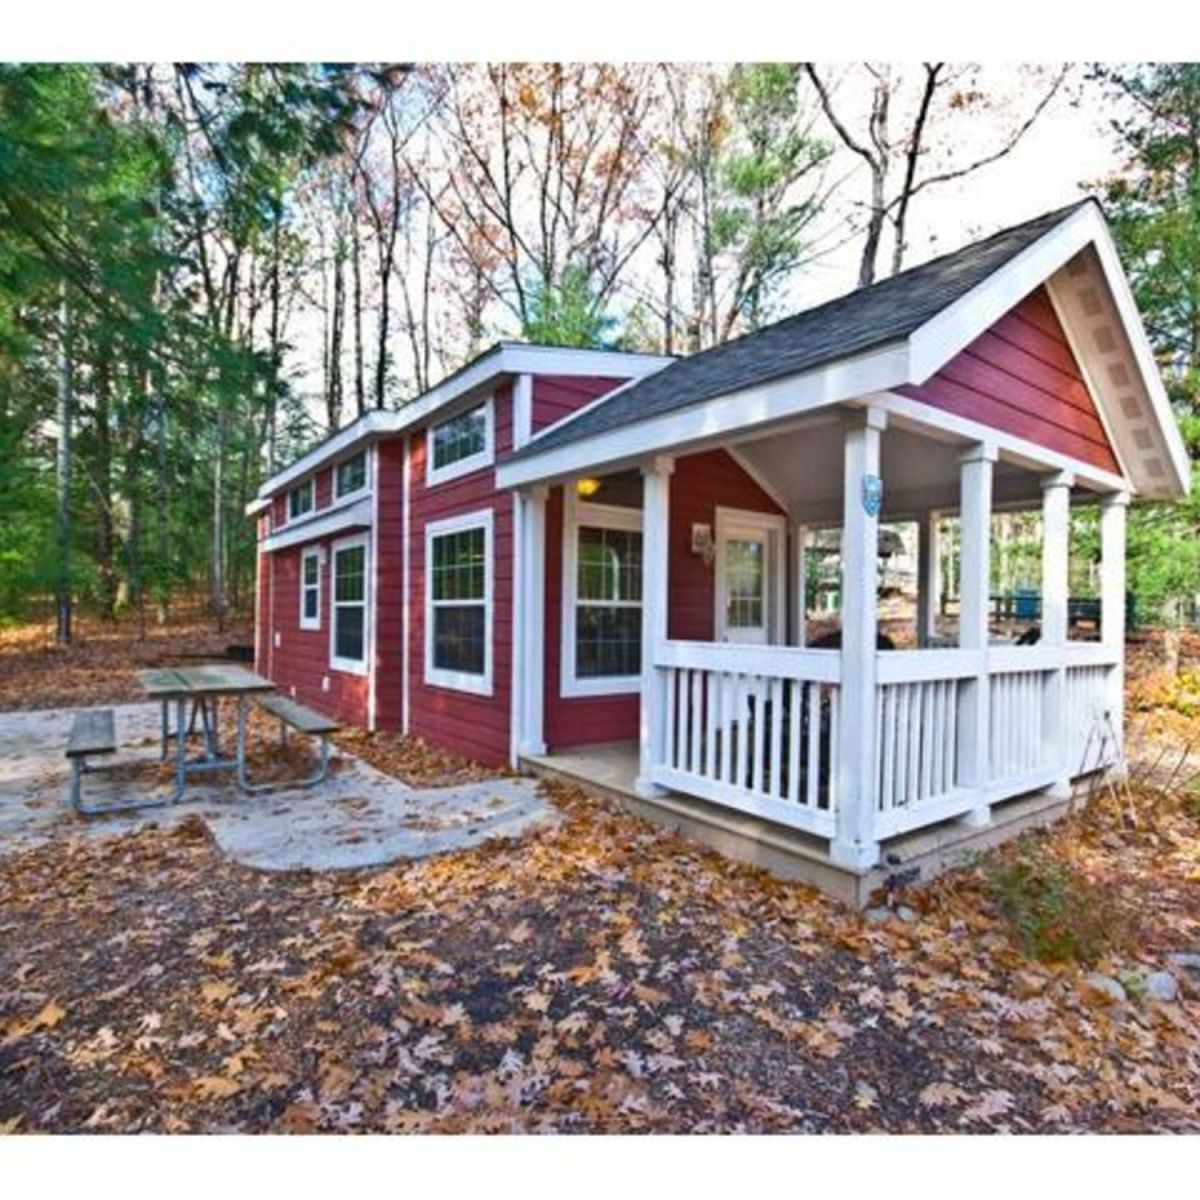 Luxury park model tiny house for sale in traverse city